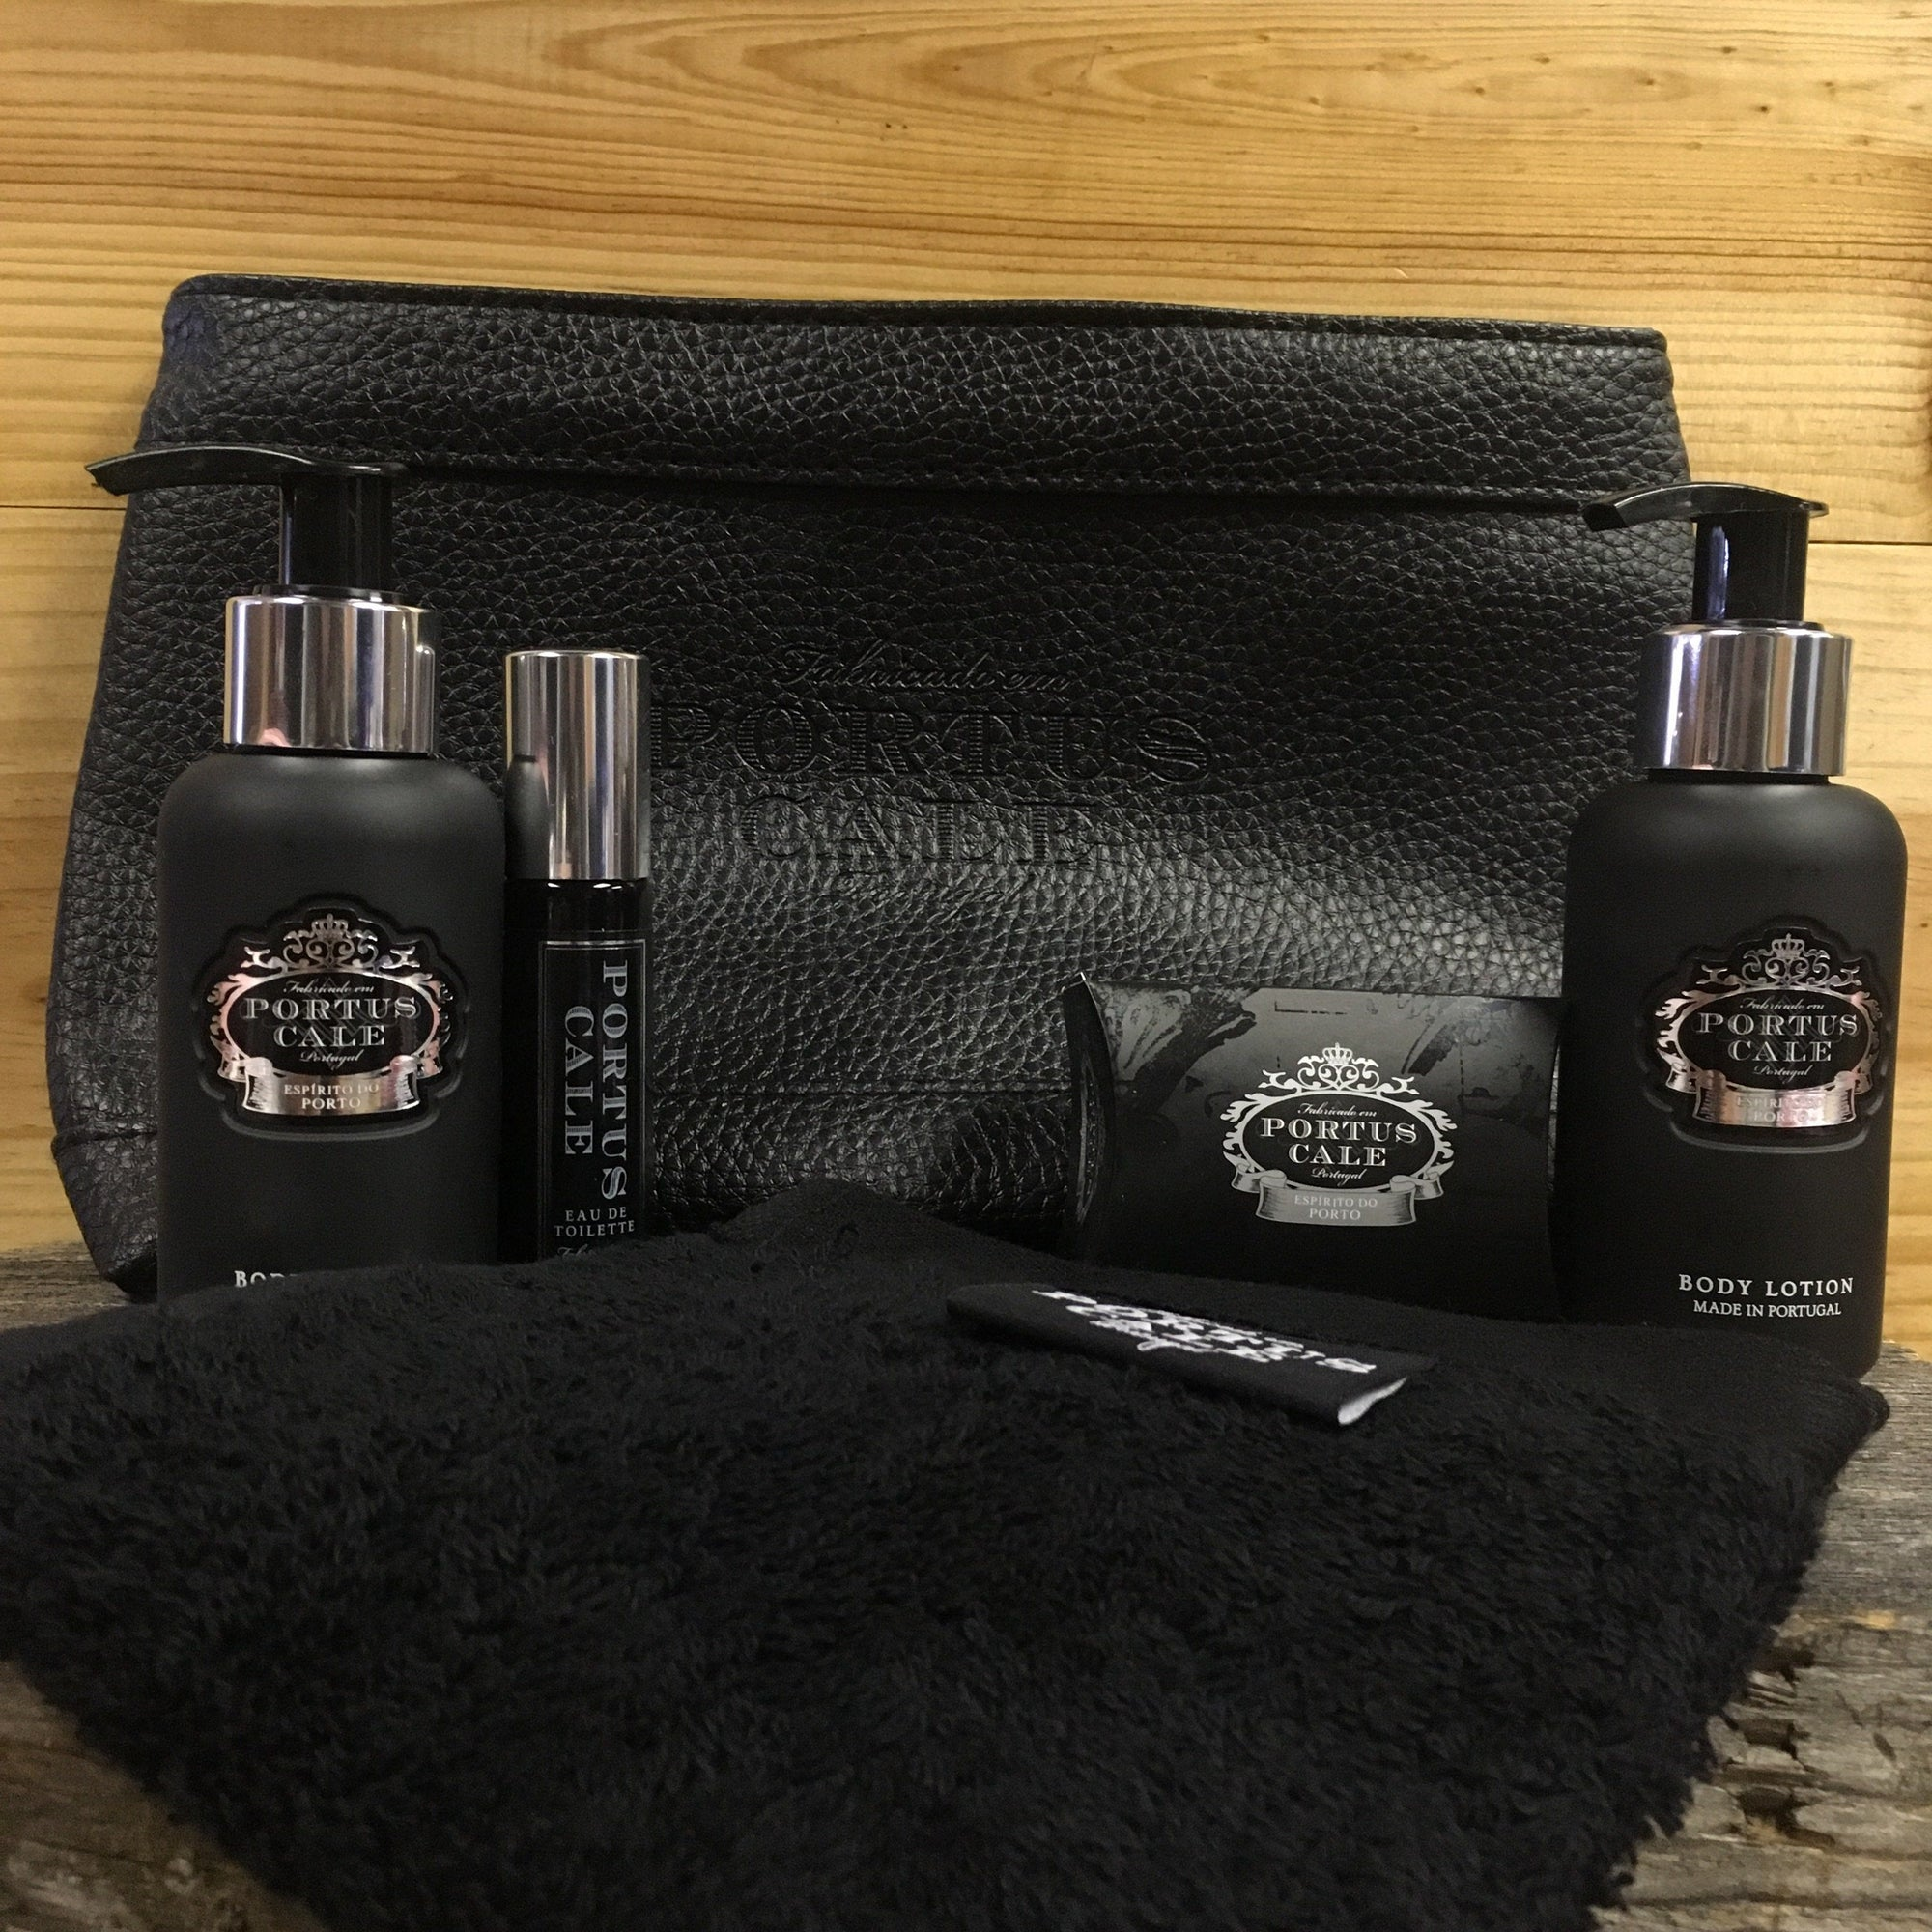 Castelbel Porto Portus Cale Black Edition Travel Set